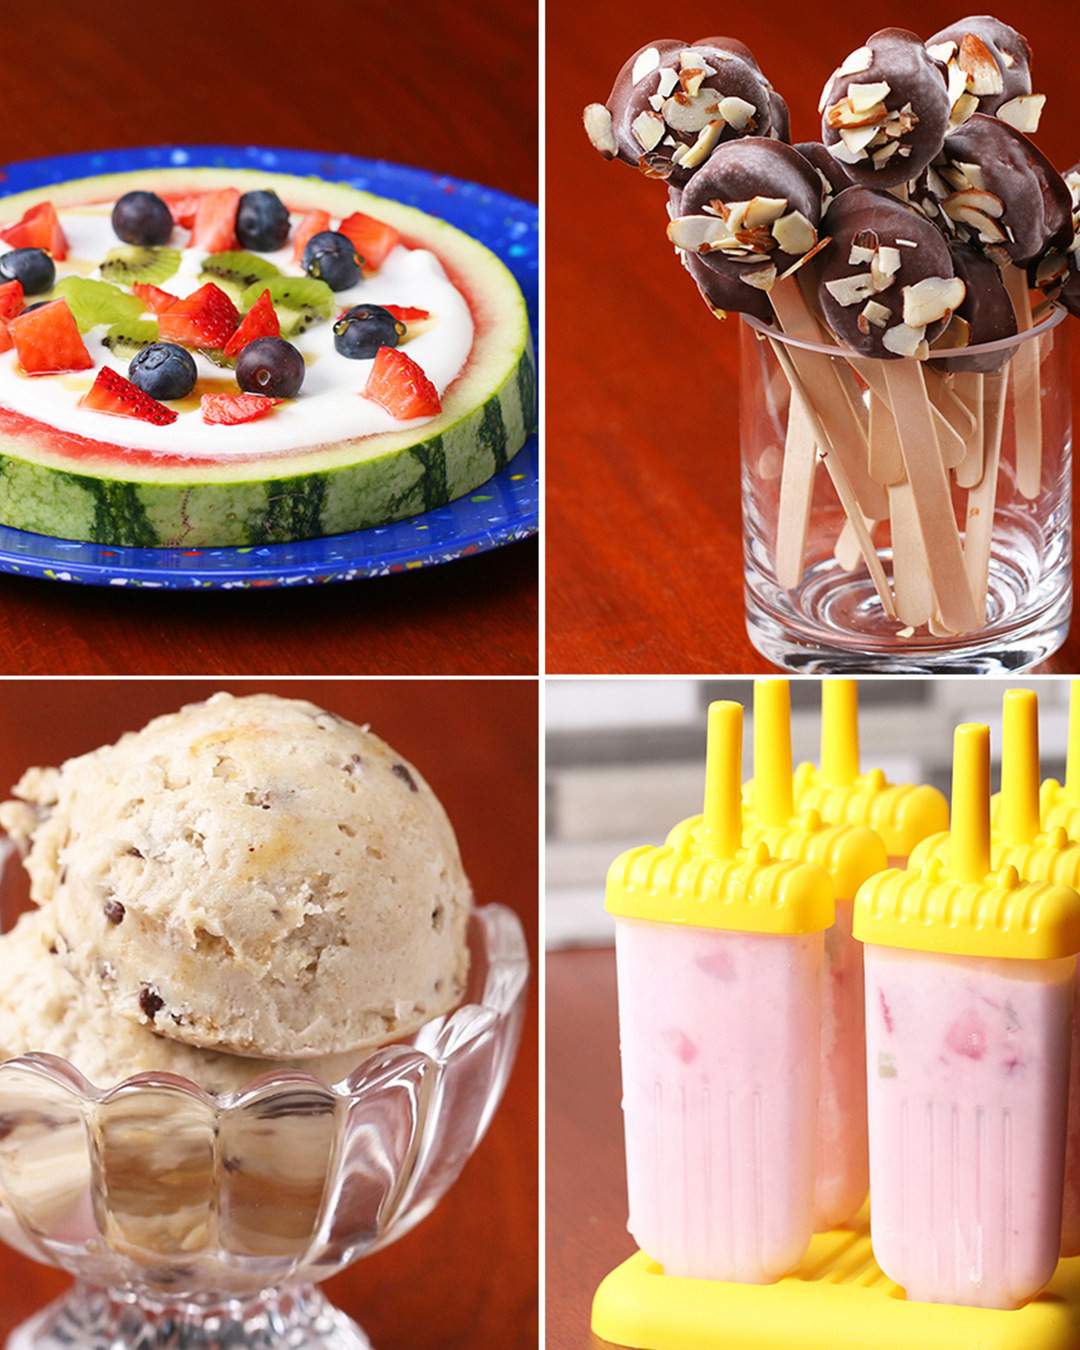 Healthy Desserts Buzzfeed top 20 Here S Four Healthy Desserts